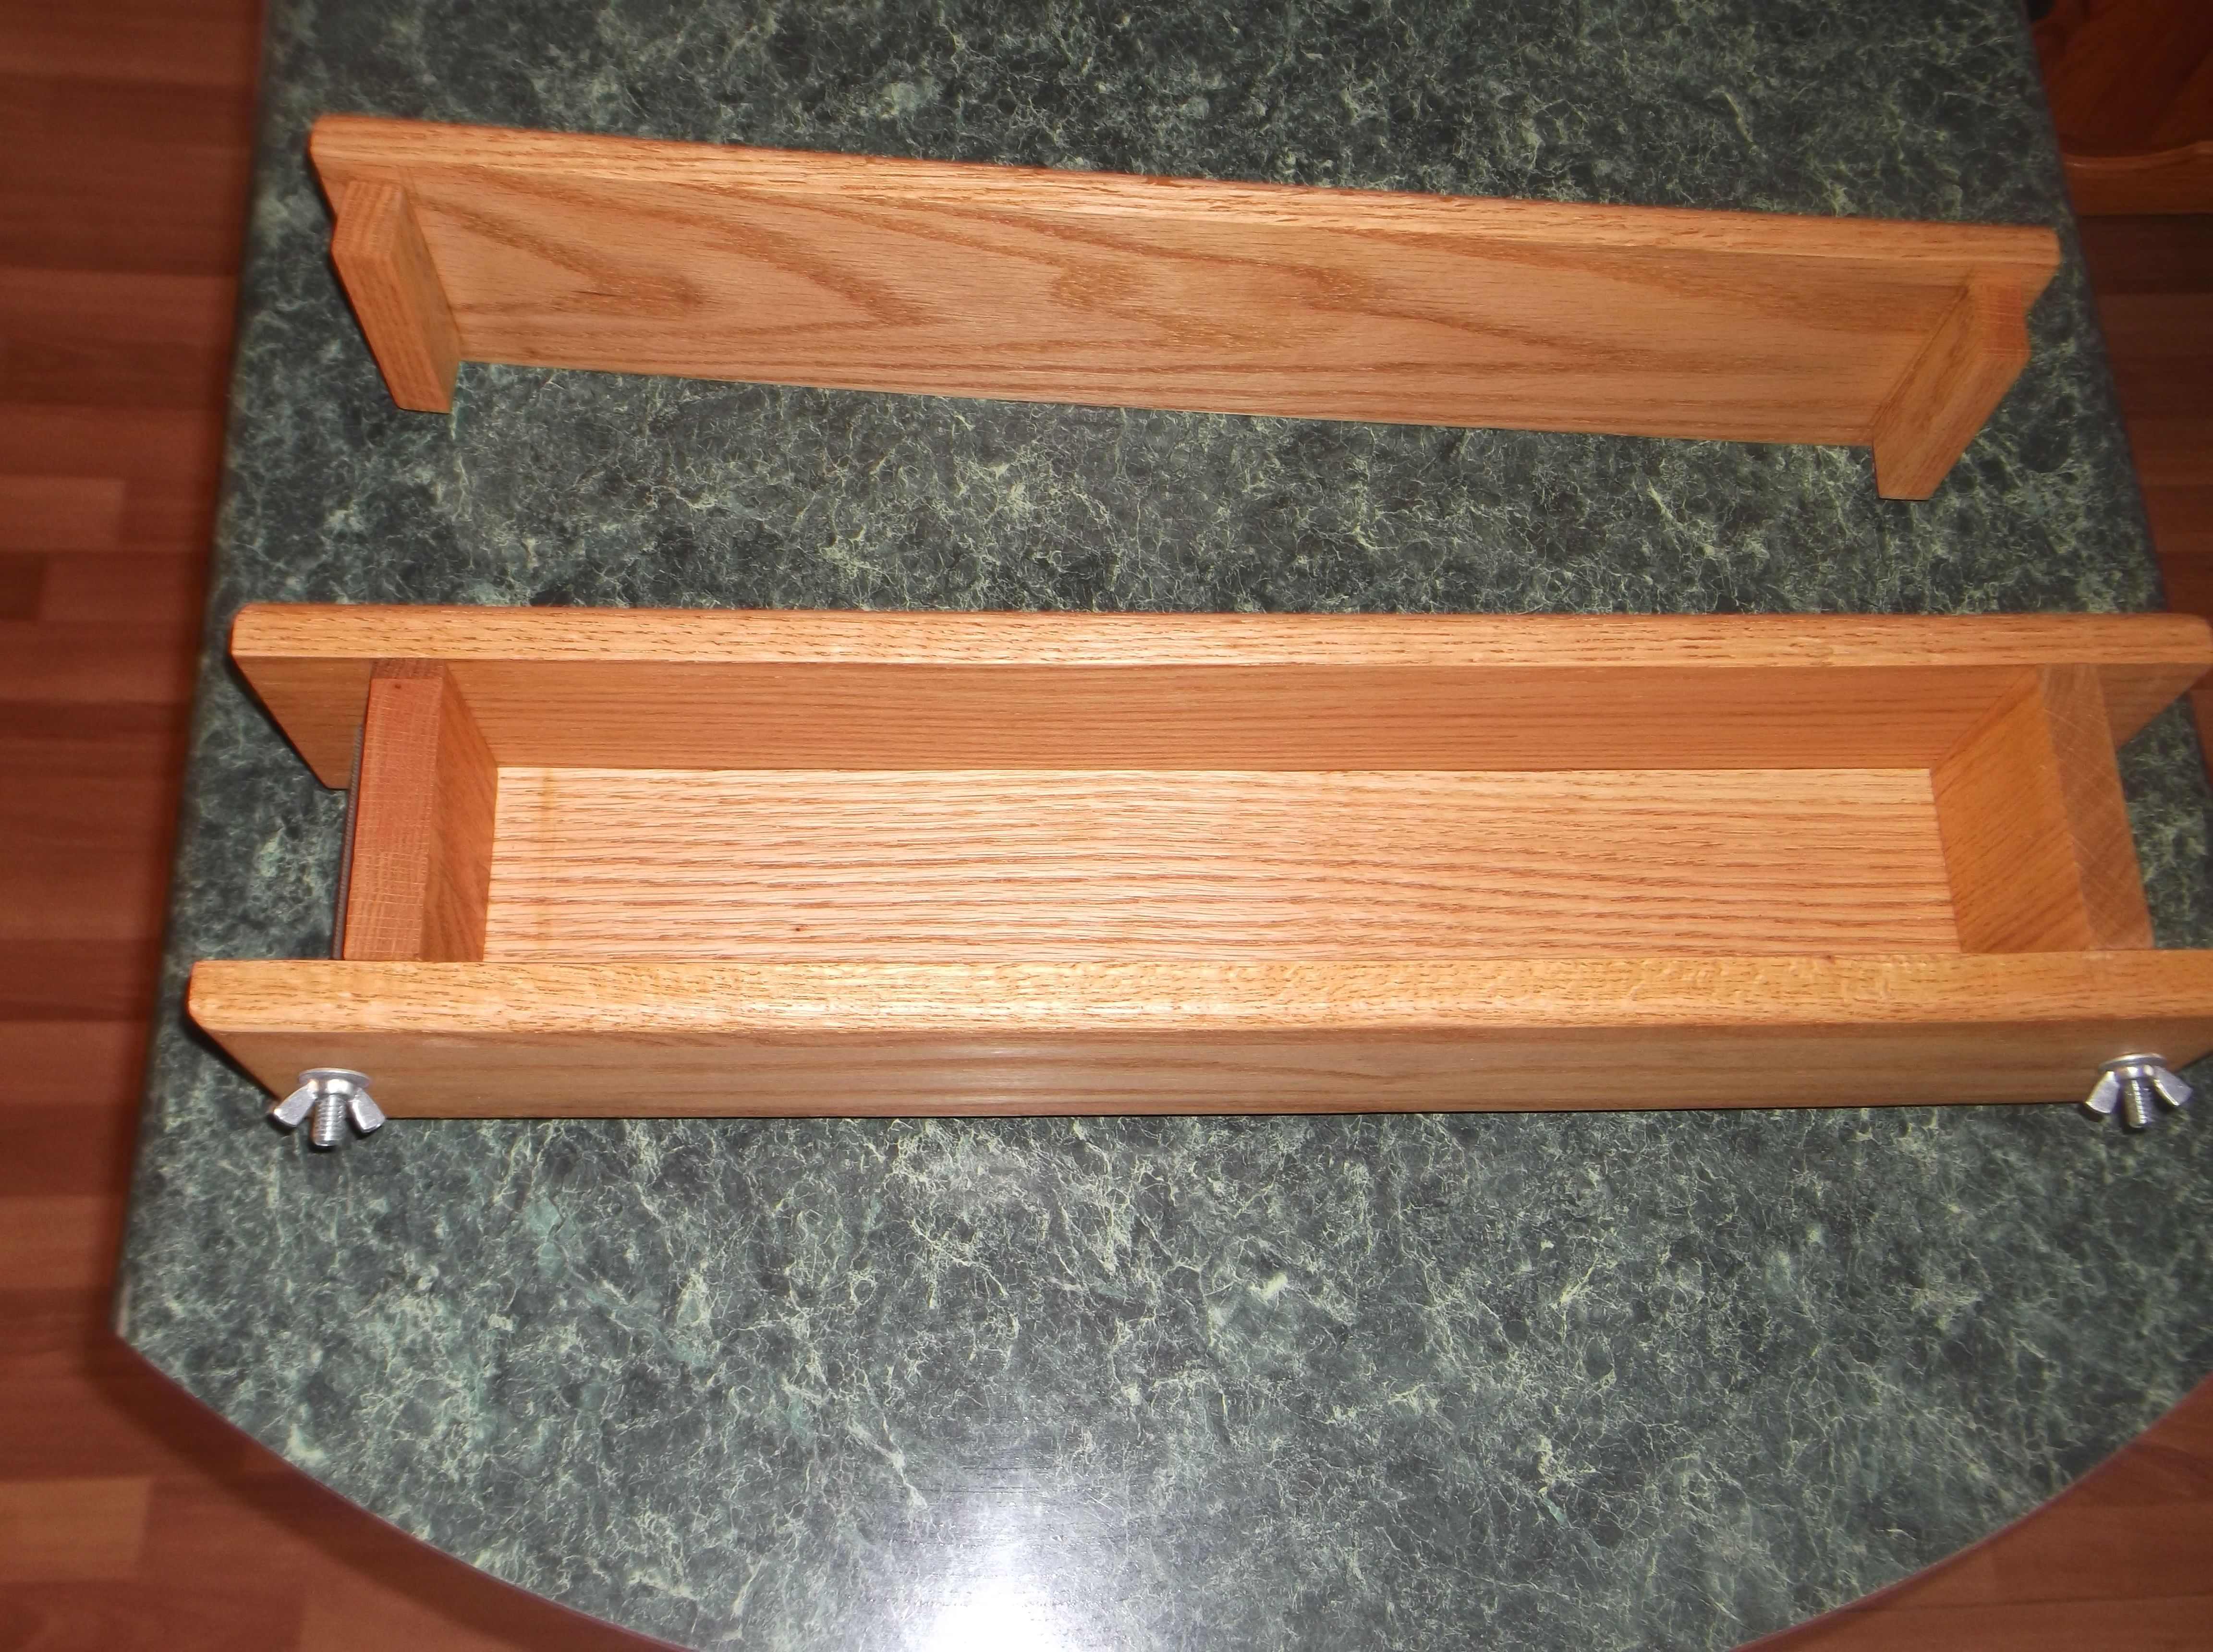 wooden soap loaf mold with fold down sides made by